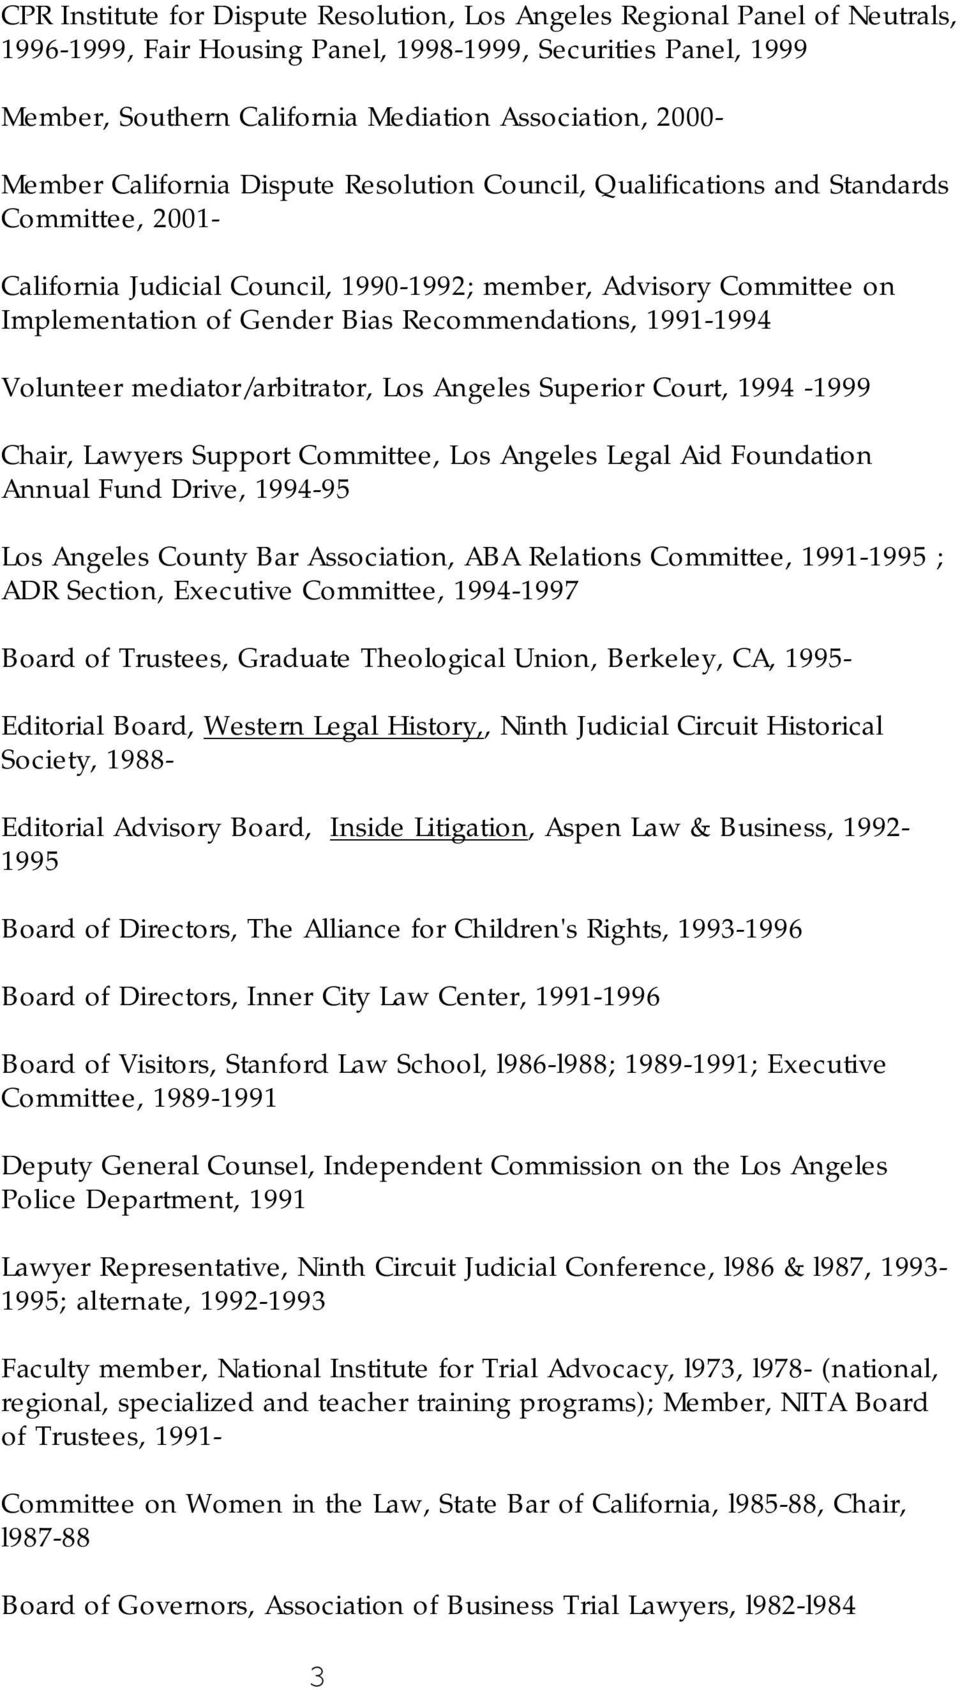 Recommendations, 1991-1994 Volunteer mediator/arbitrator, Los Angeles Superior Court, 1994-1999 Chair, Lawyers Support Committee, Los Angeles Legal Aid Foundation Annual Fund Drive, 1994-95 Los